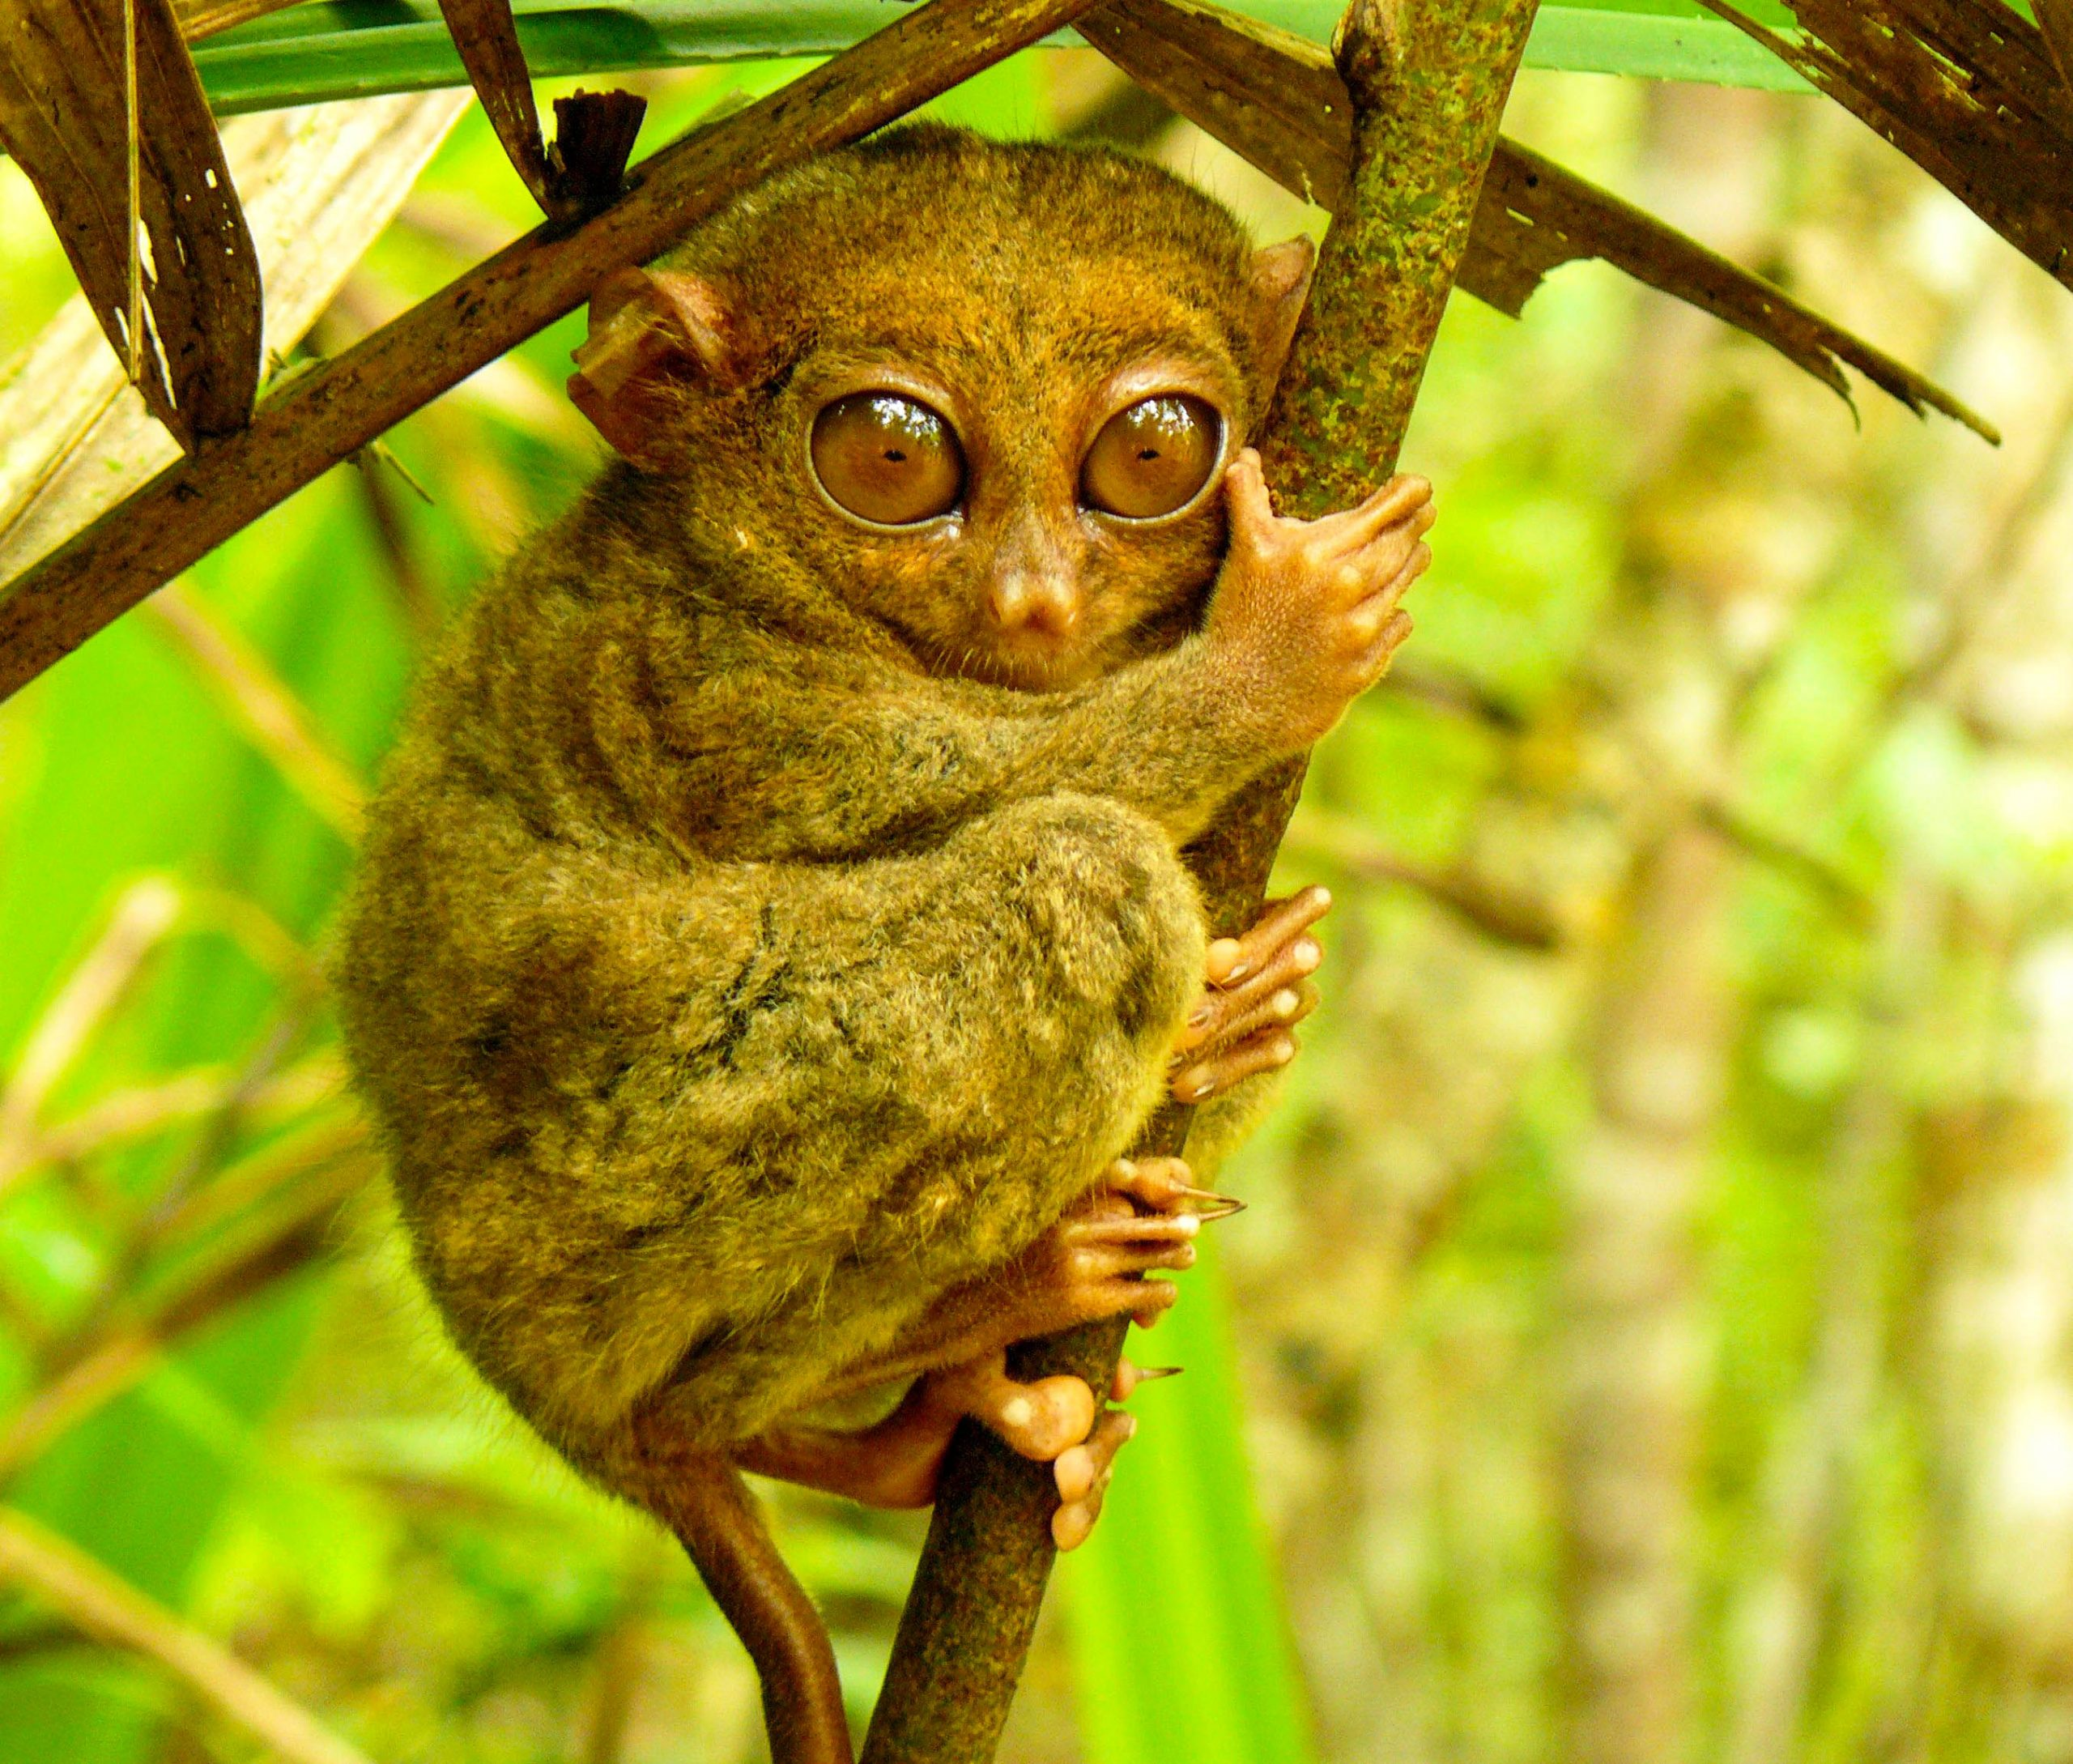 A tarsier, a small primate with large eyes, clings with both hands and feet to a thin branch